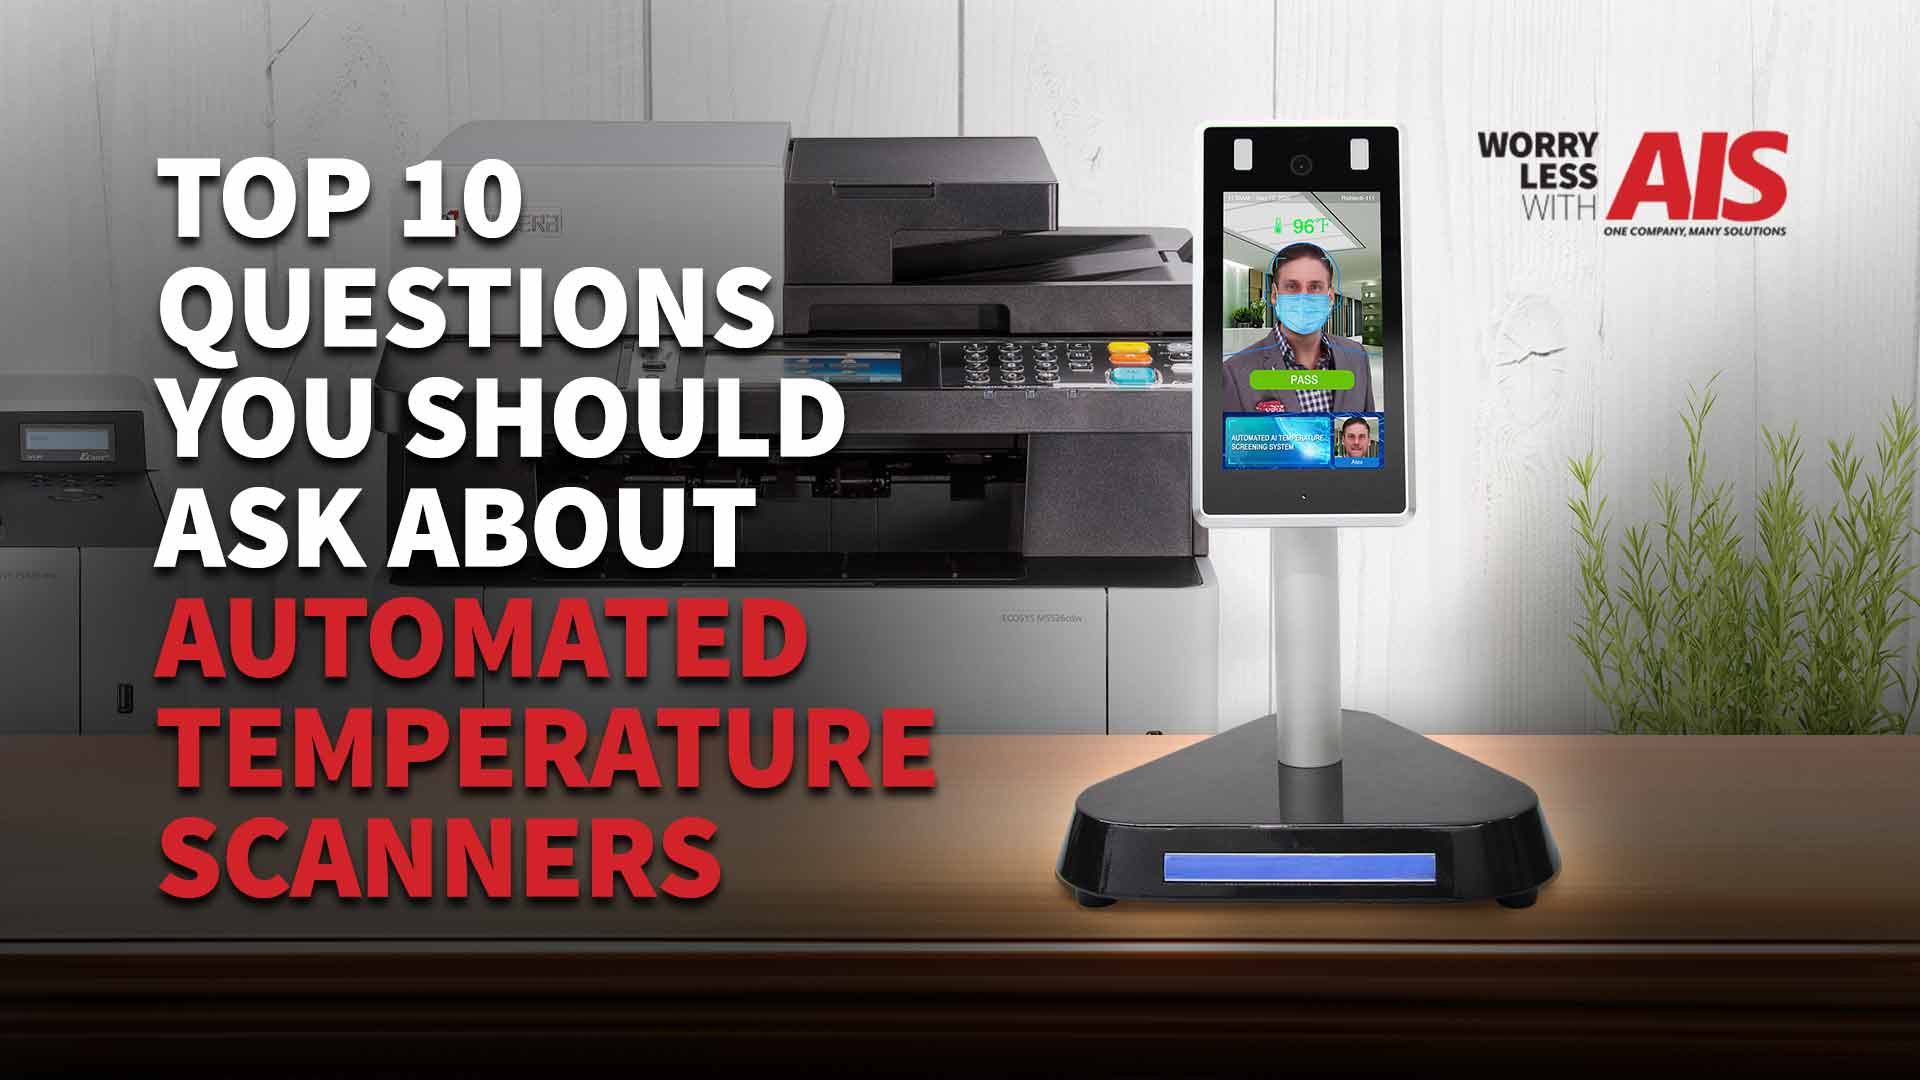 Top 10 Questions You Should Ask About Automated Temperature Scanners Before You Purchase